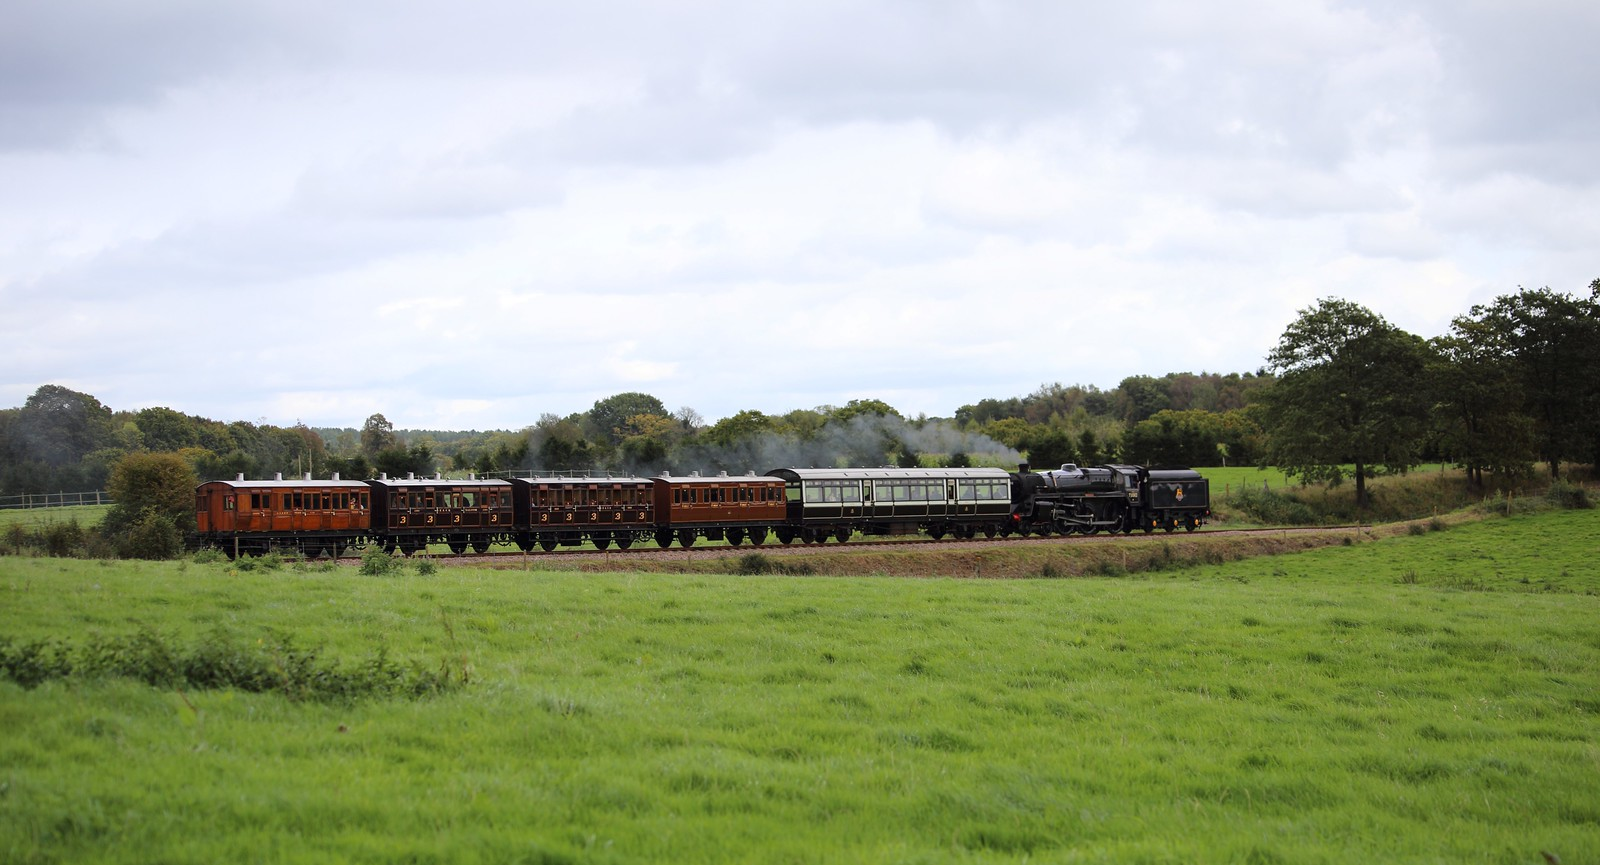 Camelot train on the Bluebell railway